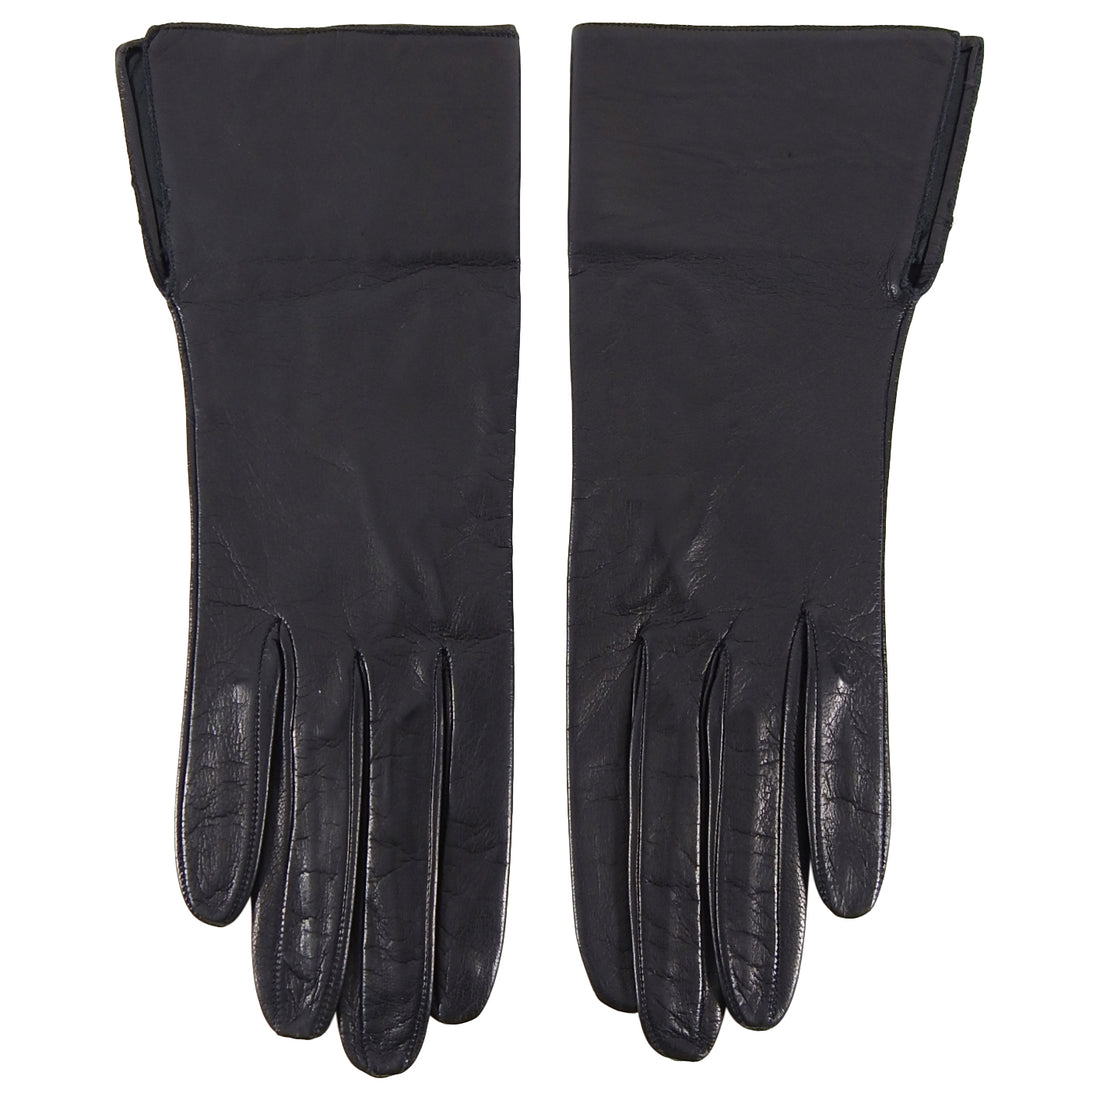 YSL Yves Saint Laurent Vintage Black Leather Gloves